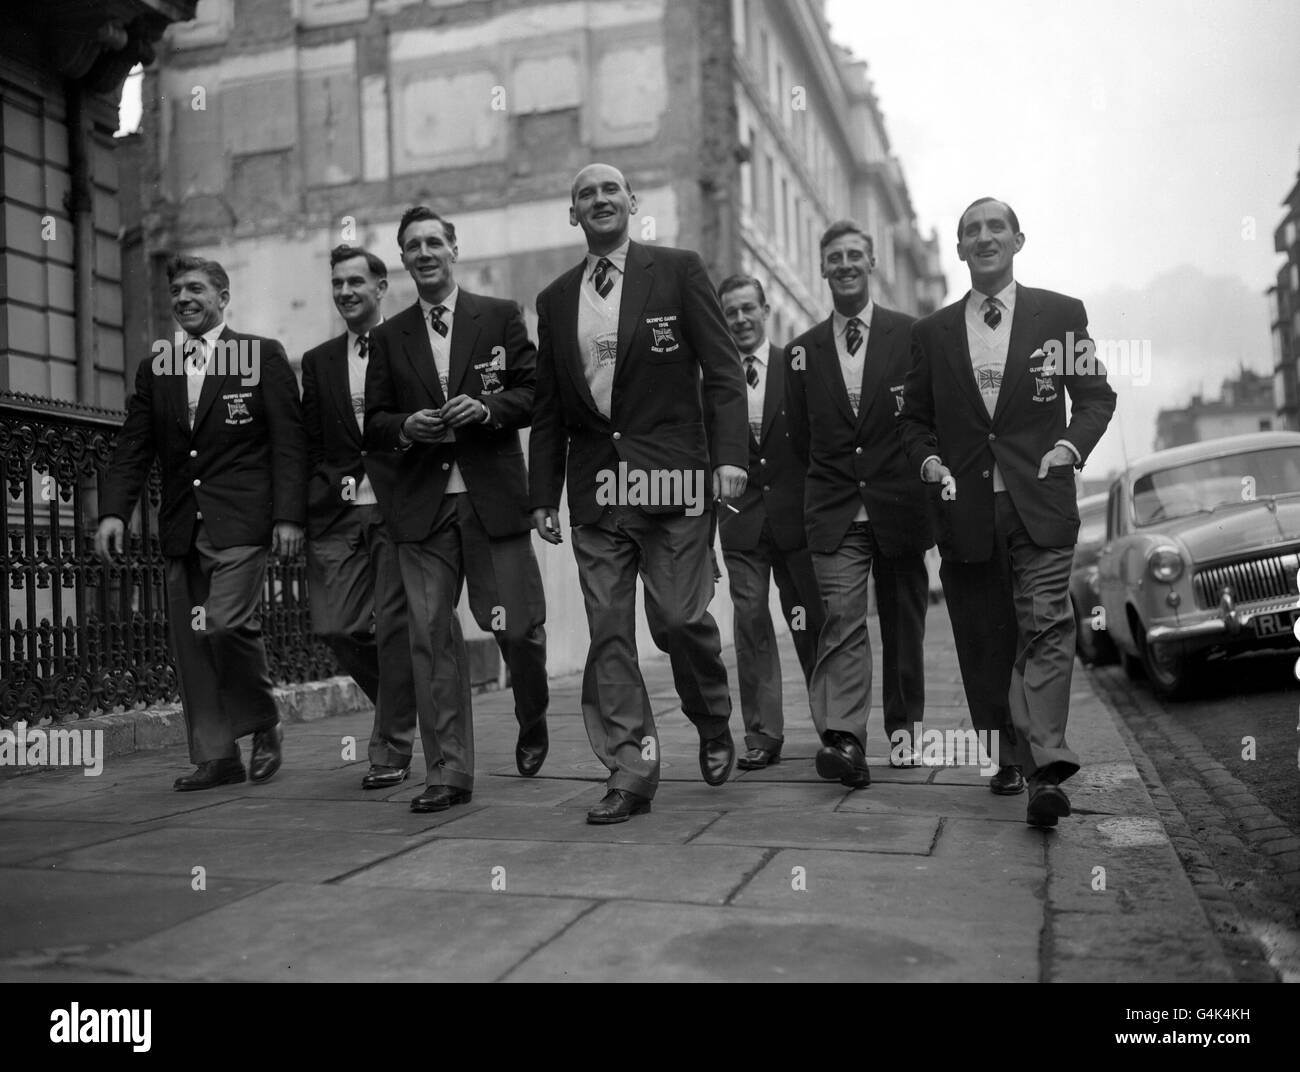 Soccer - Melbourne Olympics Games 1956 - Great Britain and Northern Ireland Football Team - London - Stock Image